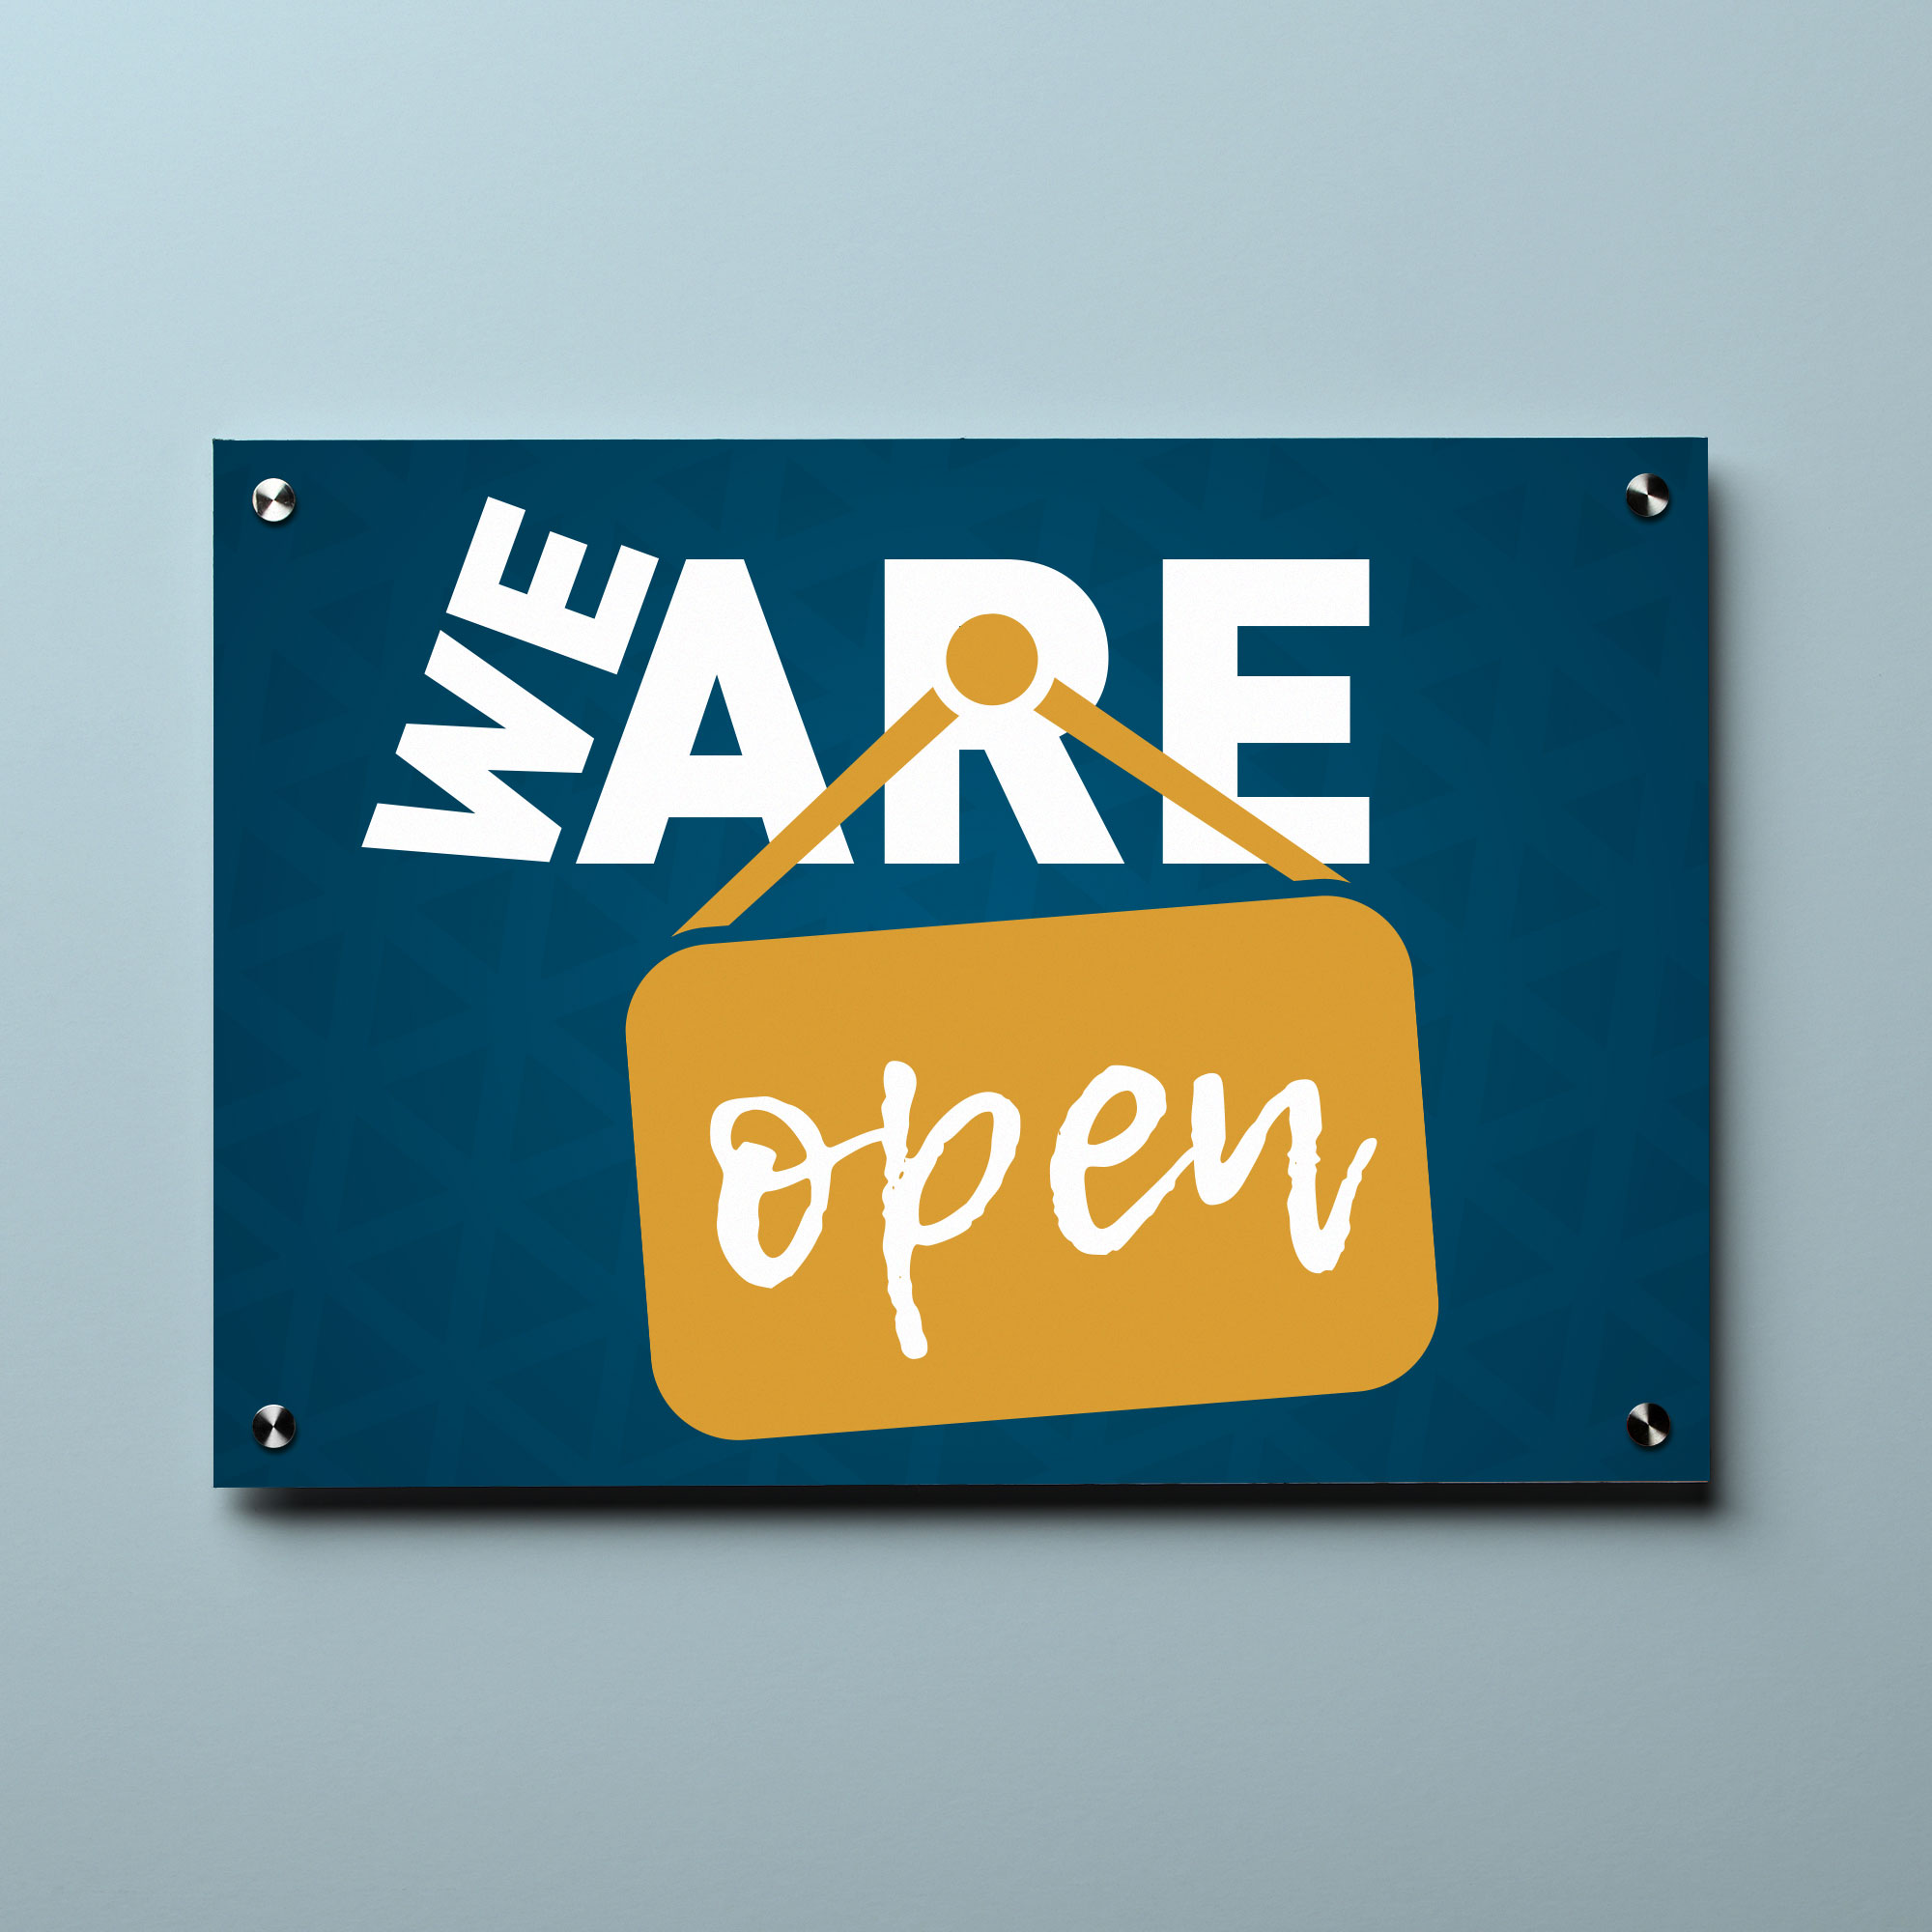 We-are-open-reclamebord